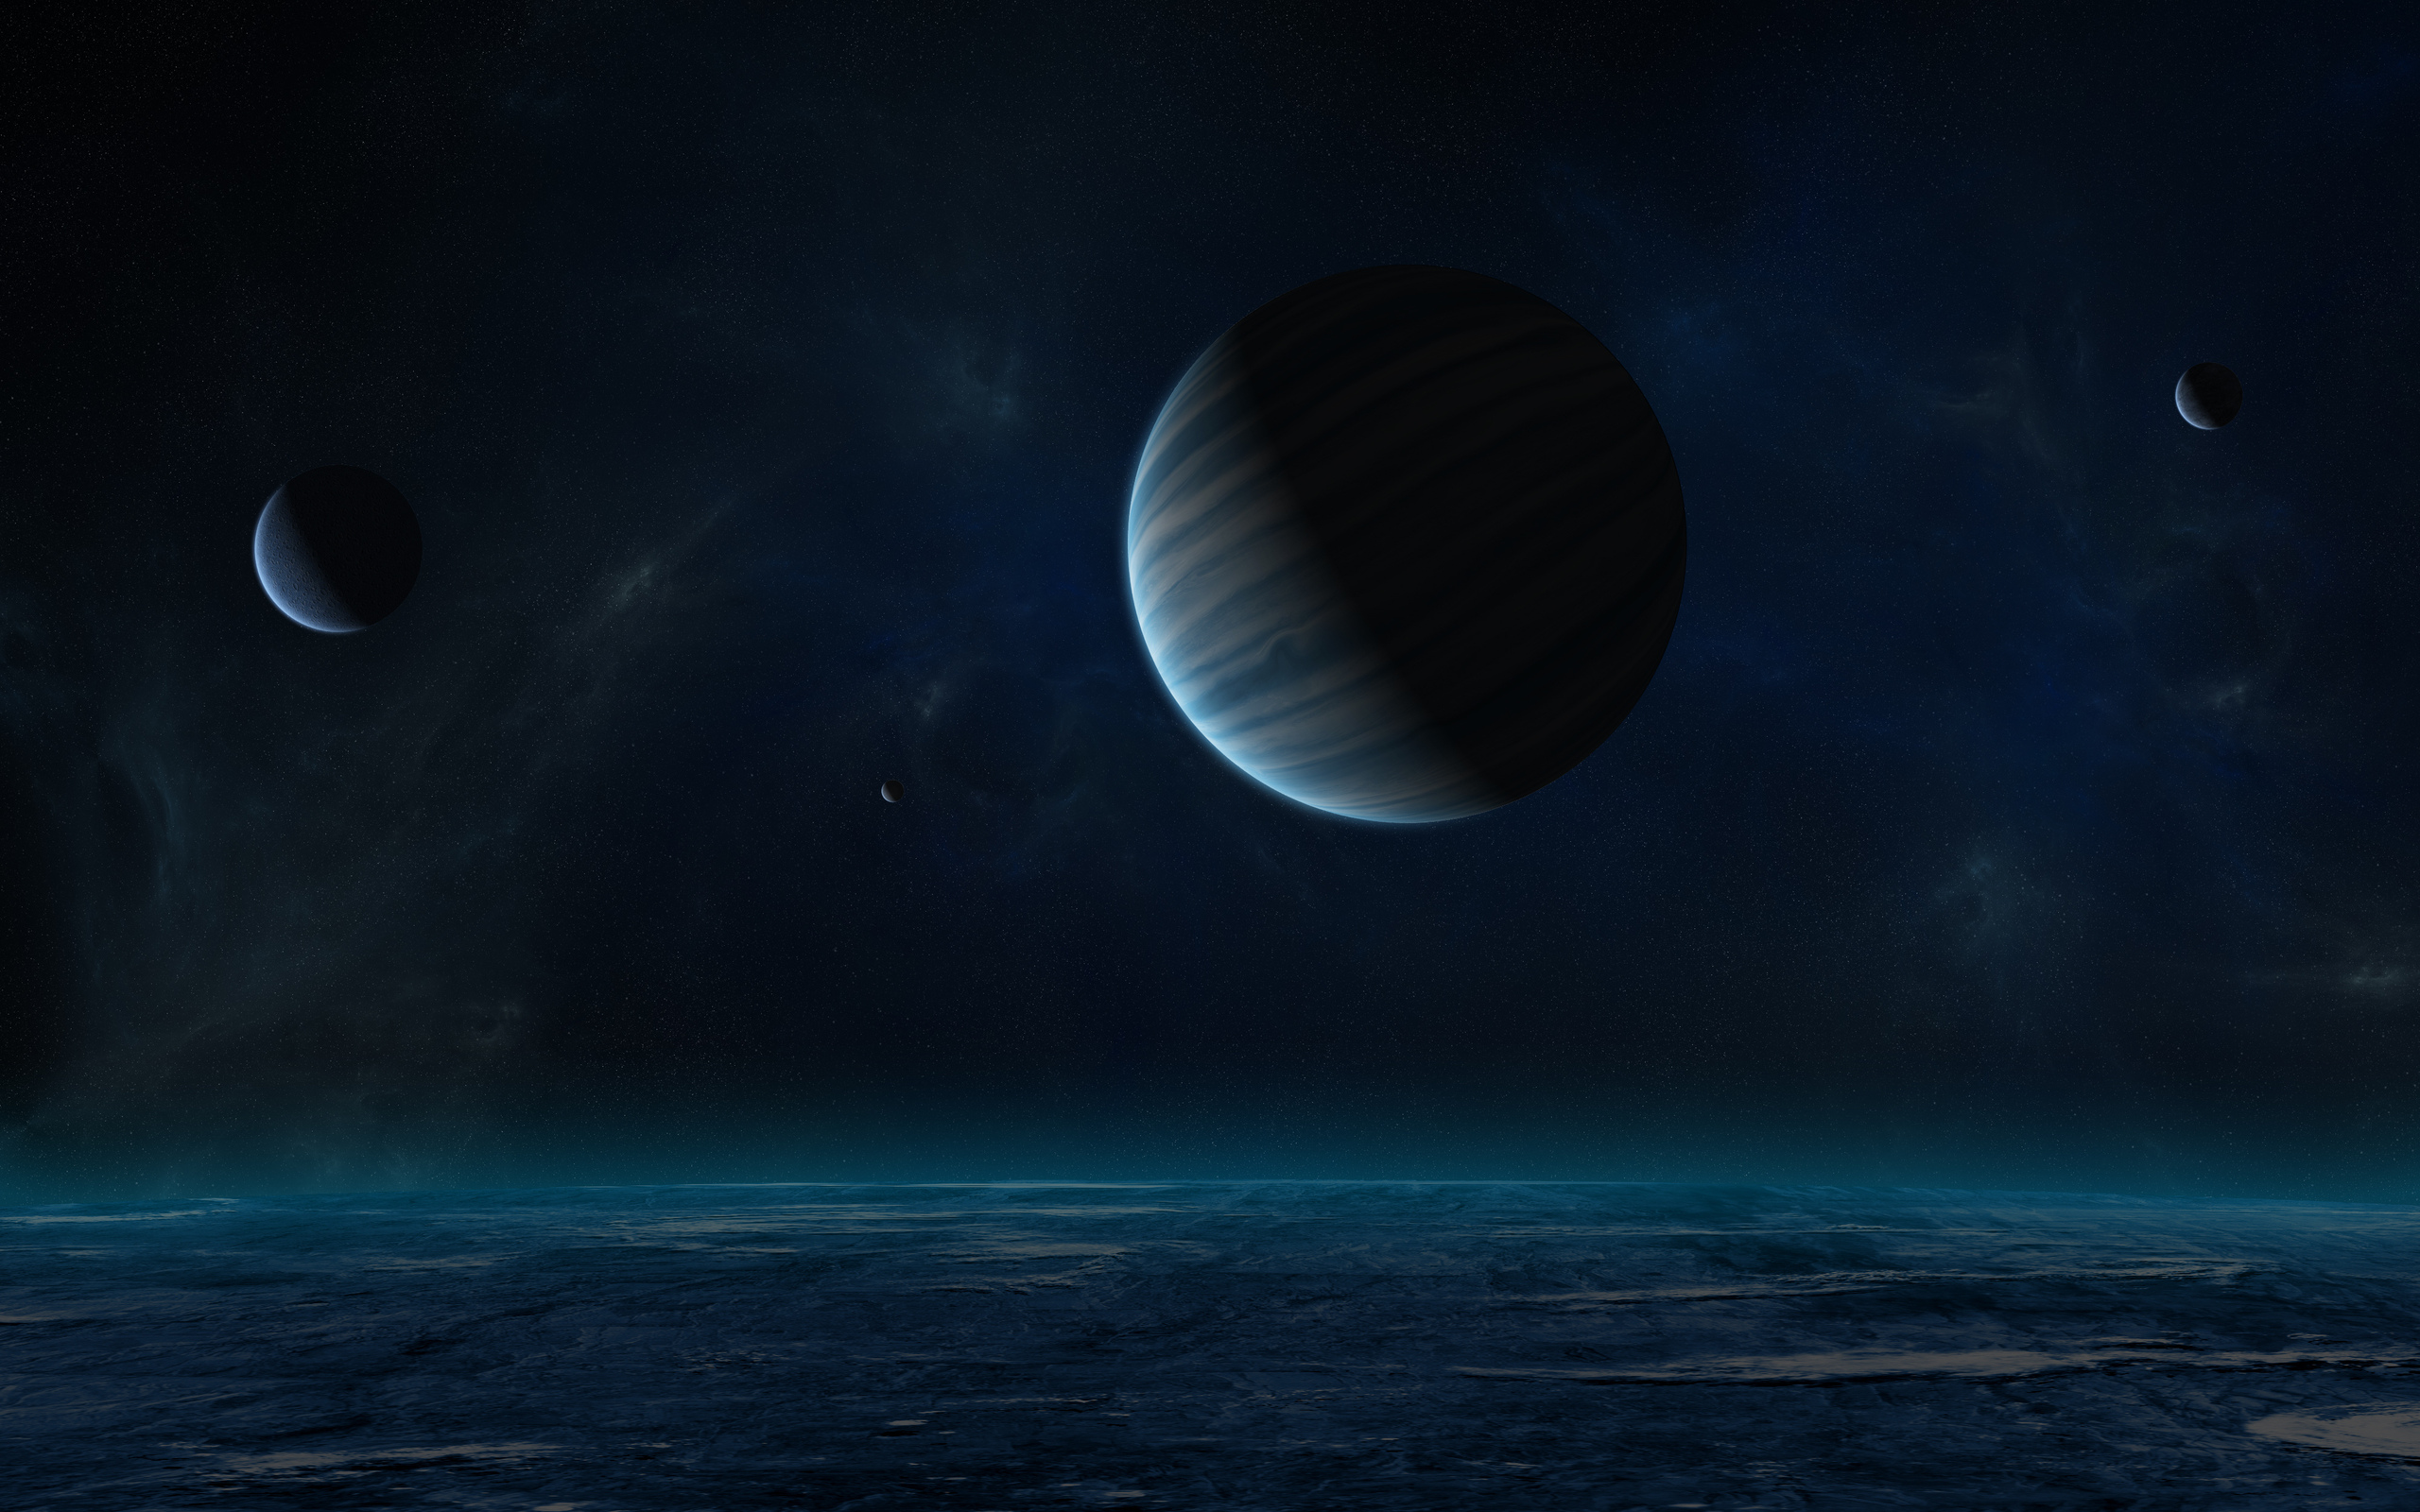 wallpapers of giant planets - photo #8